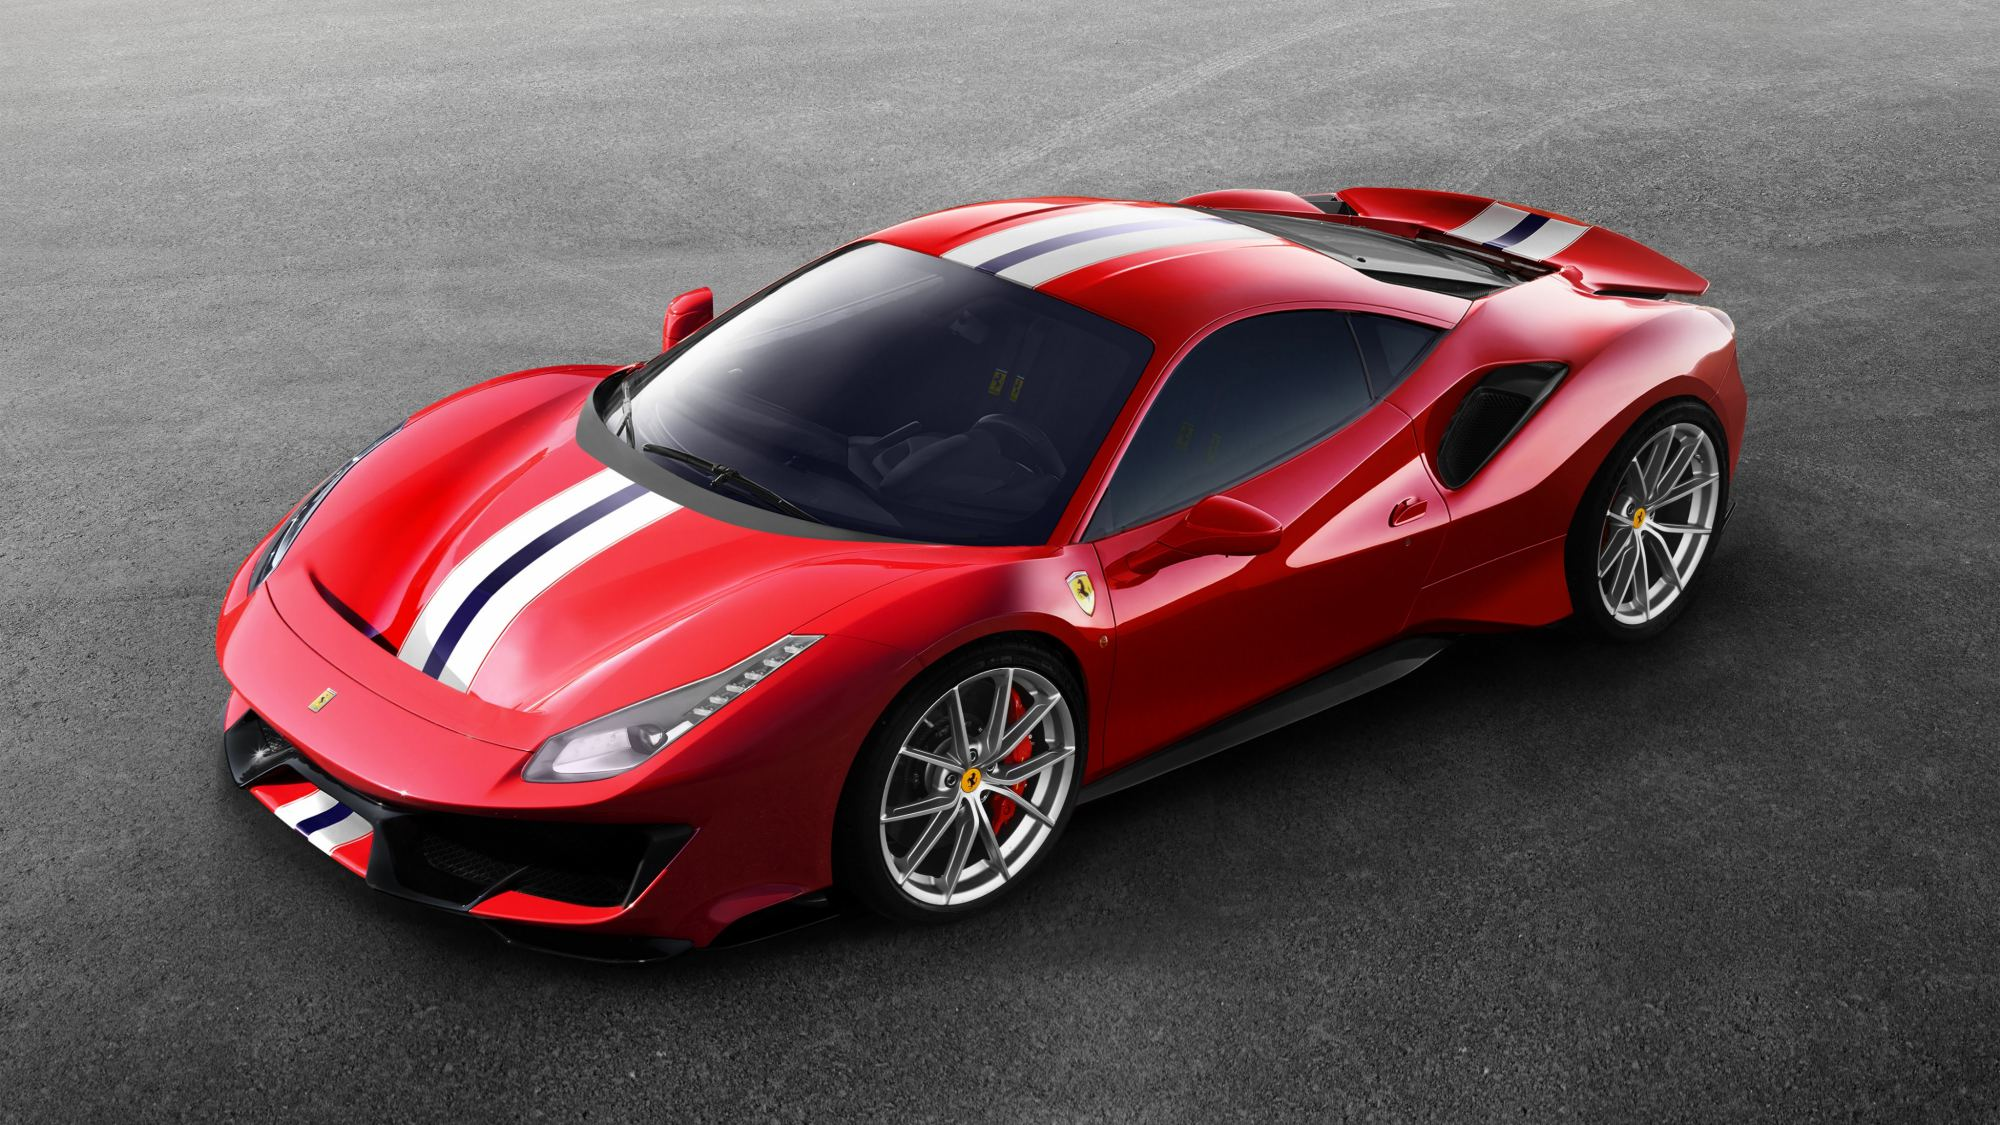 news ferrari 488 pista a hypercar quick race derived v8. Black Bedroom Furniture Sets. Home Design Ideas